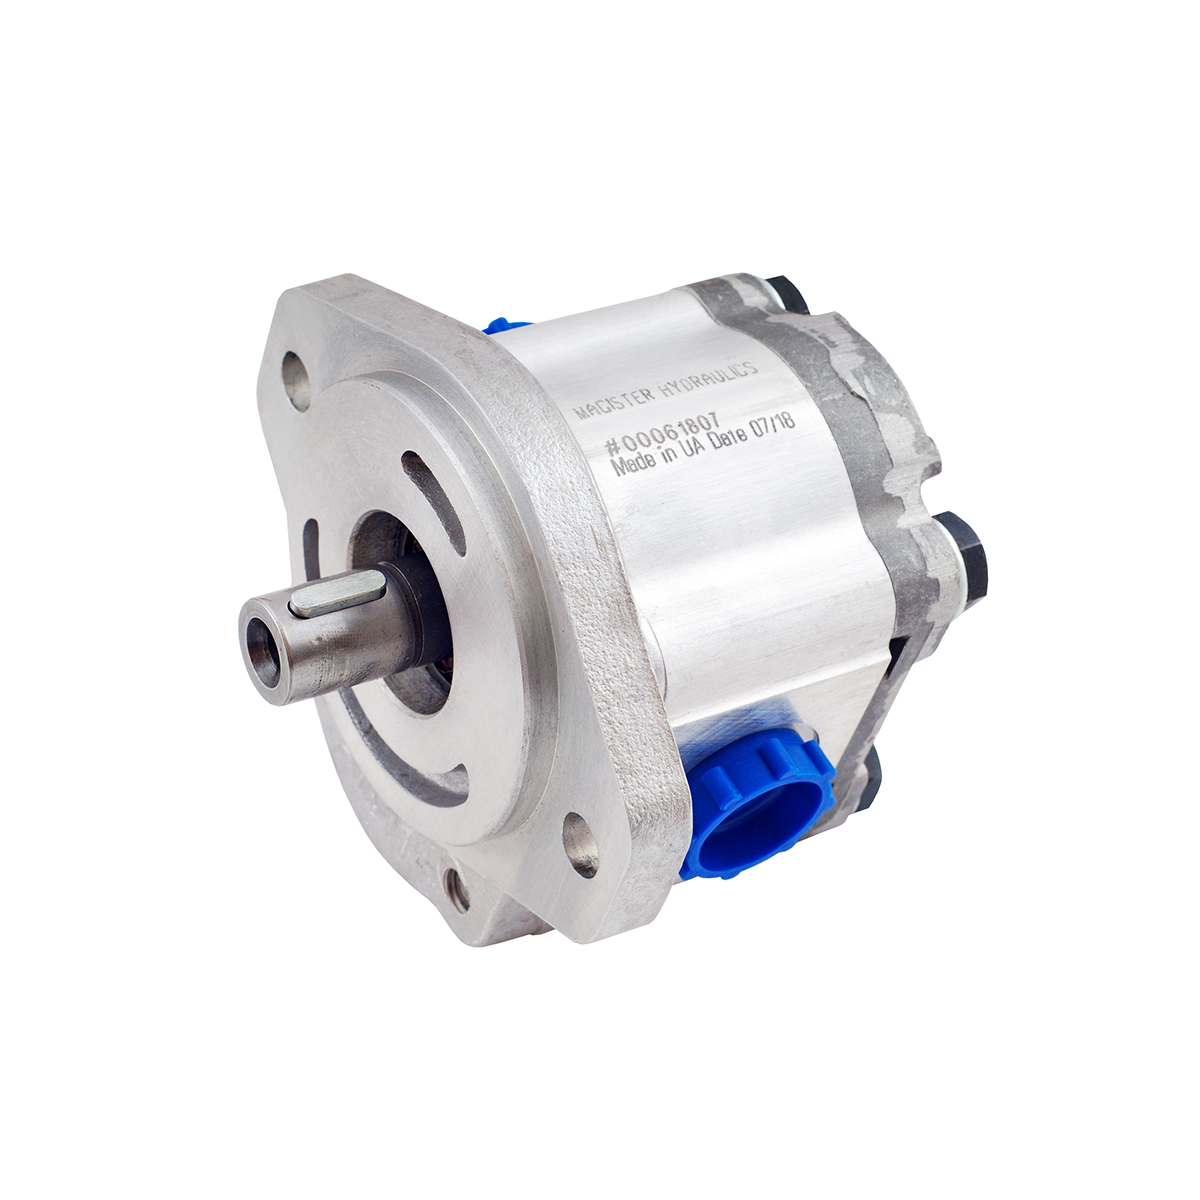 0.61 CID hydraulic gear pump, 3/4 keyed shaft counter-clockwise gear pump | Magister Hydraulics